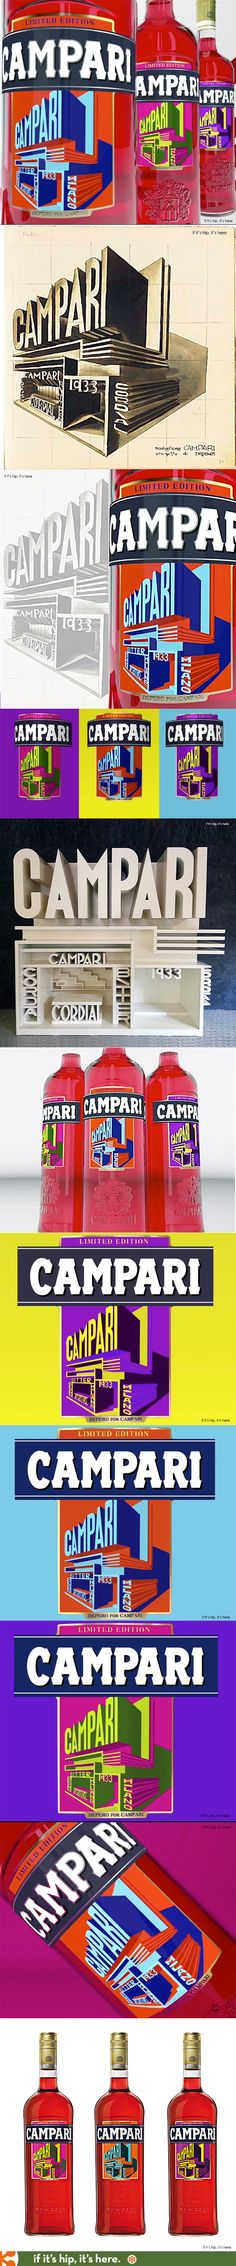 This year's Campari Art Labels - an ongoing project since 2010 - feature modernized versions of the legendary Italian Futurist Fortunato Depero's original design for the 1933 Campari Pavilion created for an expo in Milan.